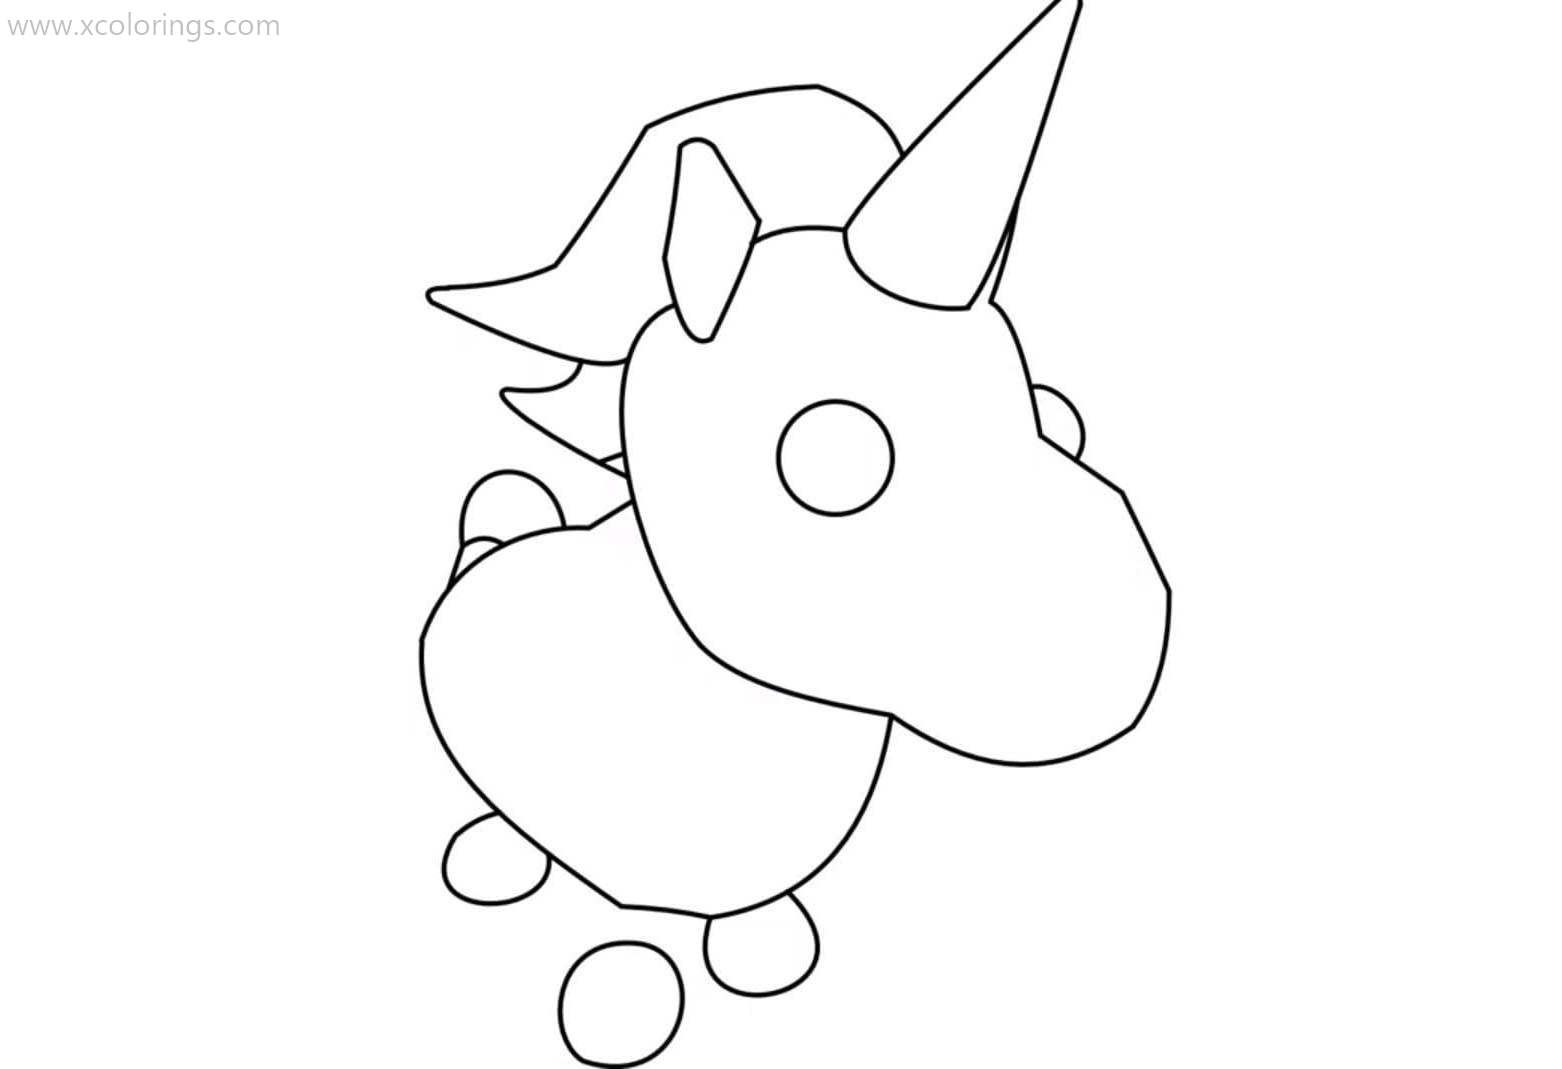 Adopt Me Unicorn Coloring Pages Unicorn Coloring Pages Coloring Pages Adoption